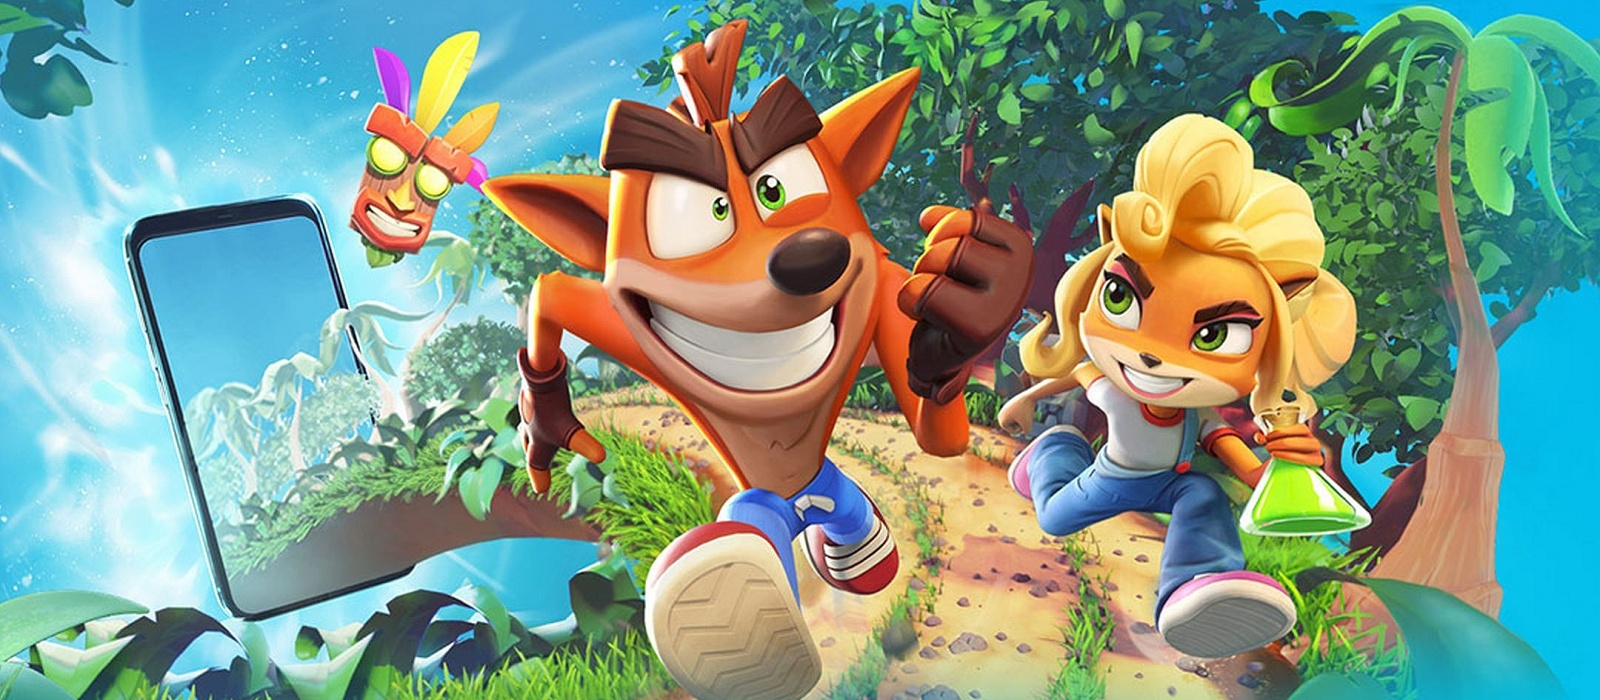 Crash Bandicoot will drop into Android and iOS in spring 2021